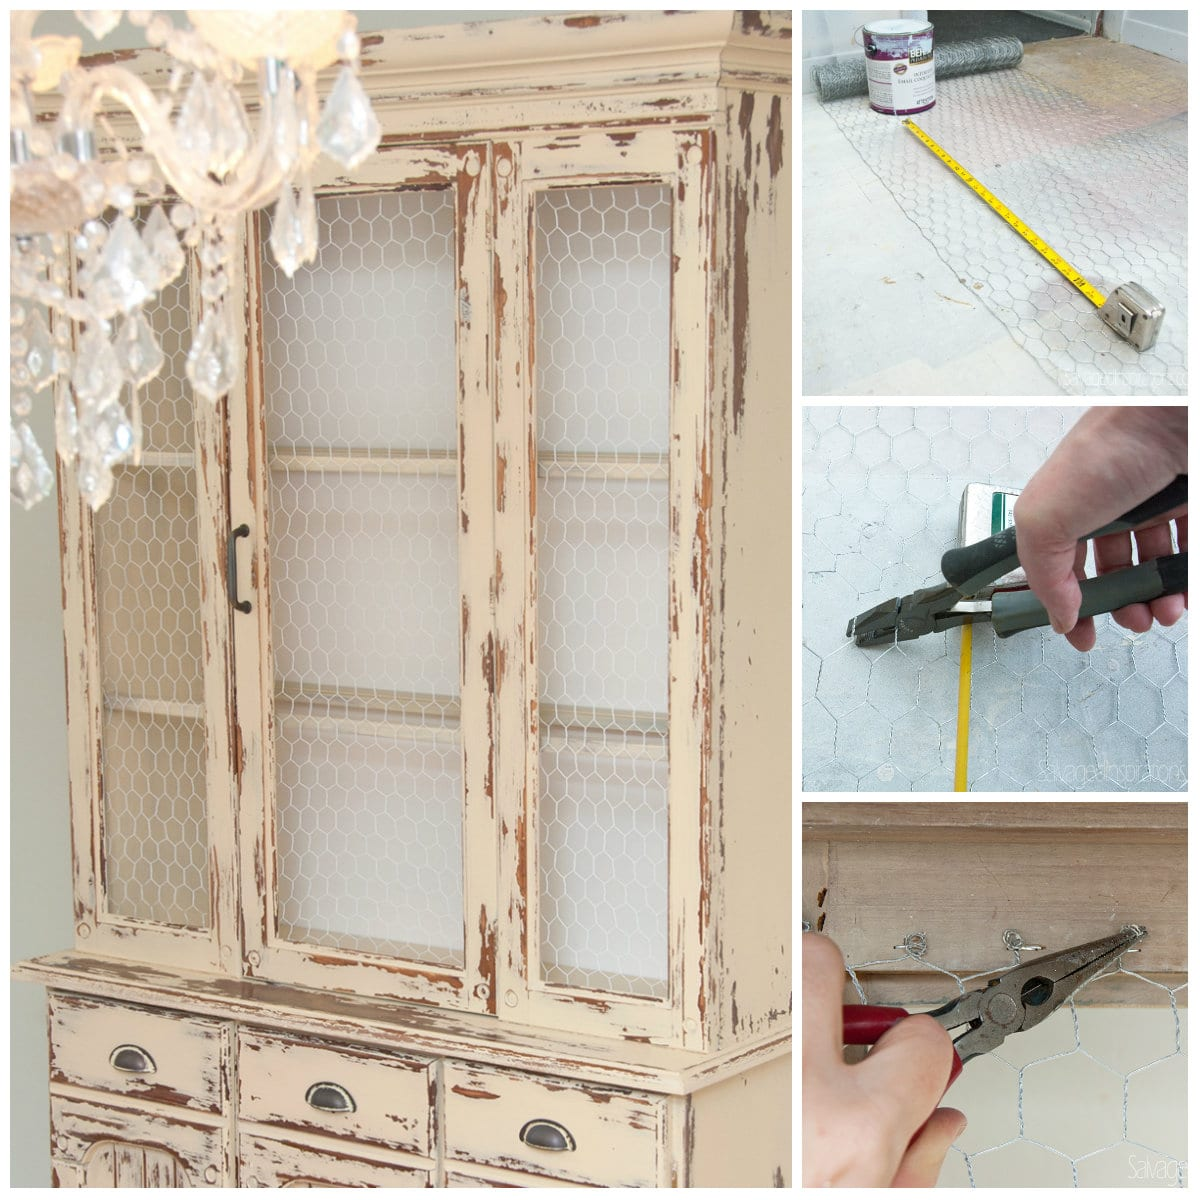 Replacing Glass In Kitchen Cabinet Doors: Past Meets Present Trend: Replace Glass With Chicken Wire